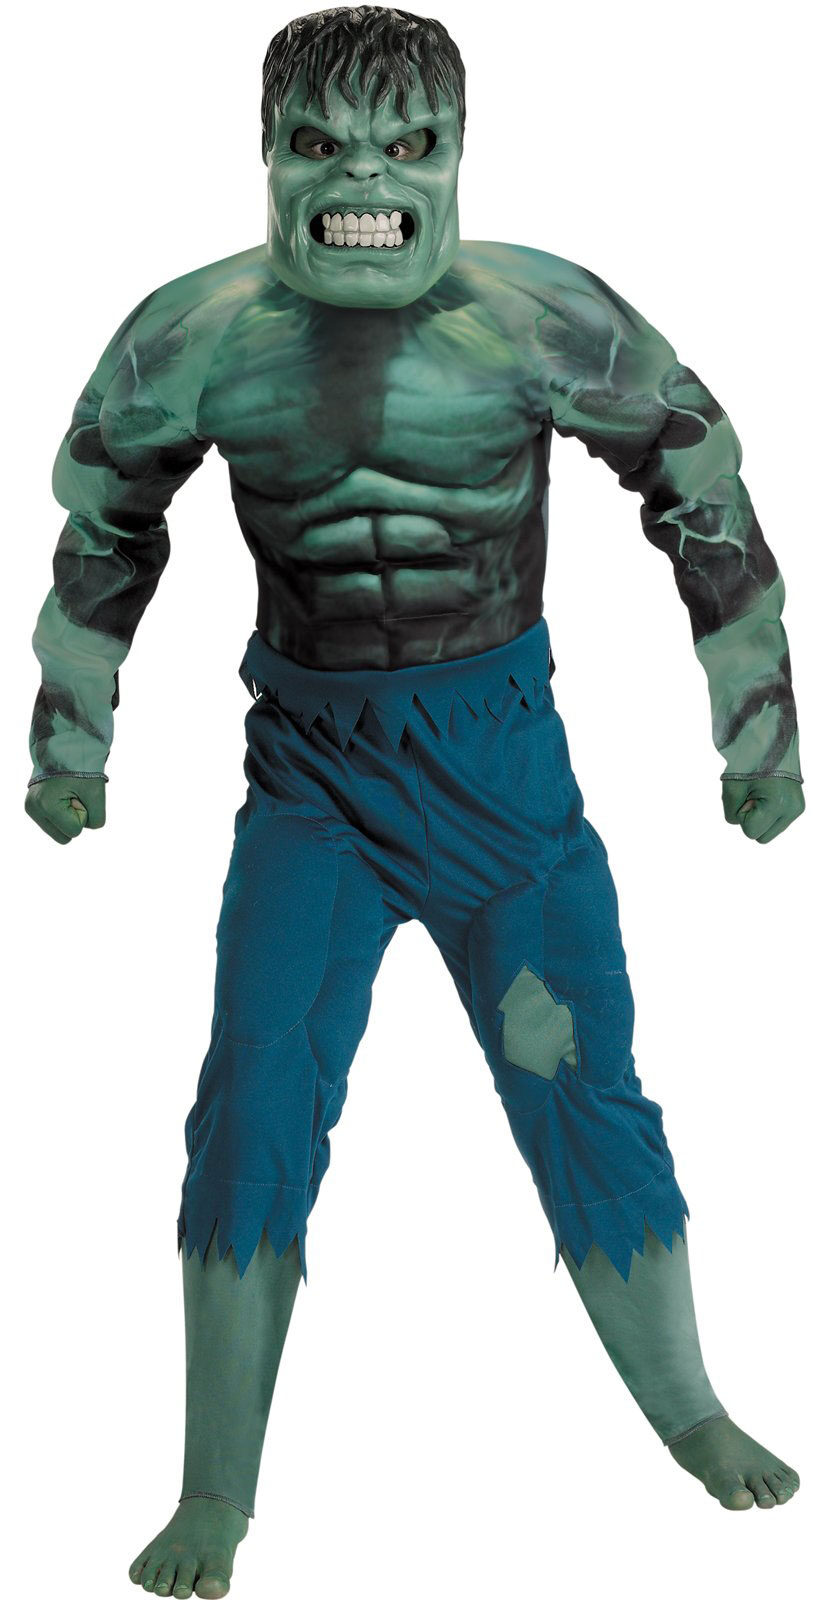 Hulk Muscle Chest Deluxe Kids Costume Mr Costumes  sc 1 st  Meningrey & Hulk Kid Costume - Meningrey